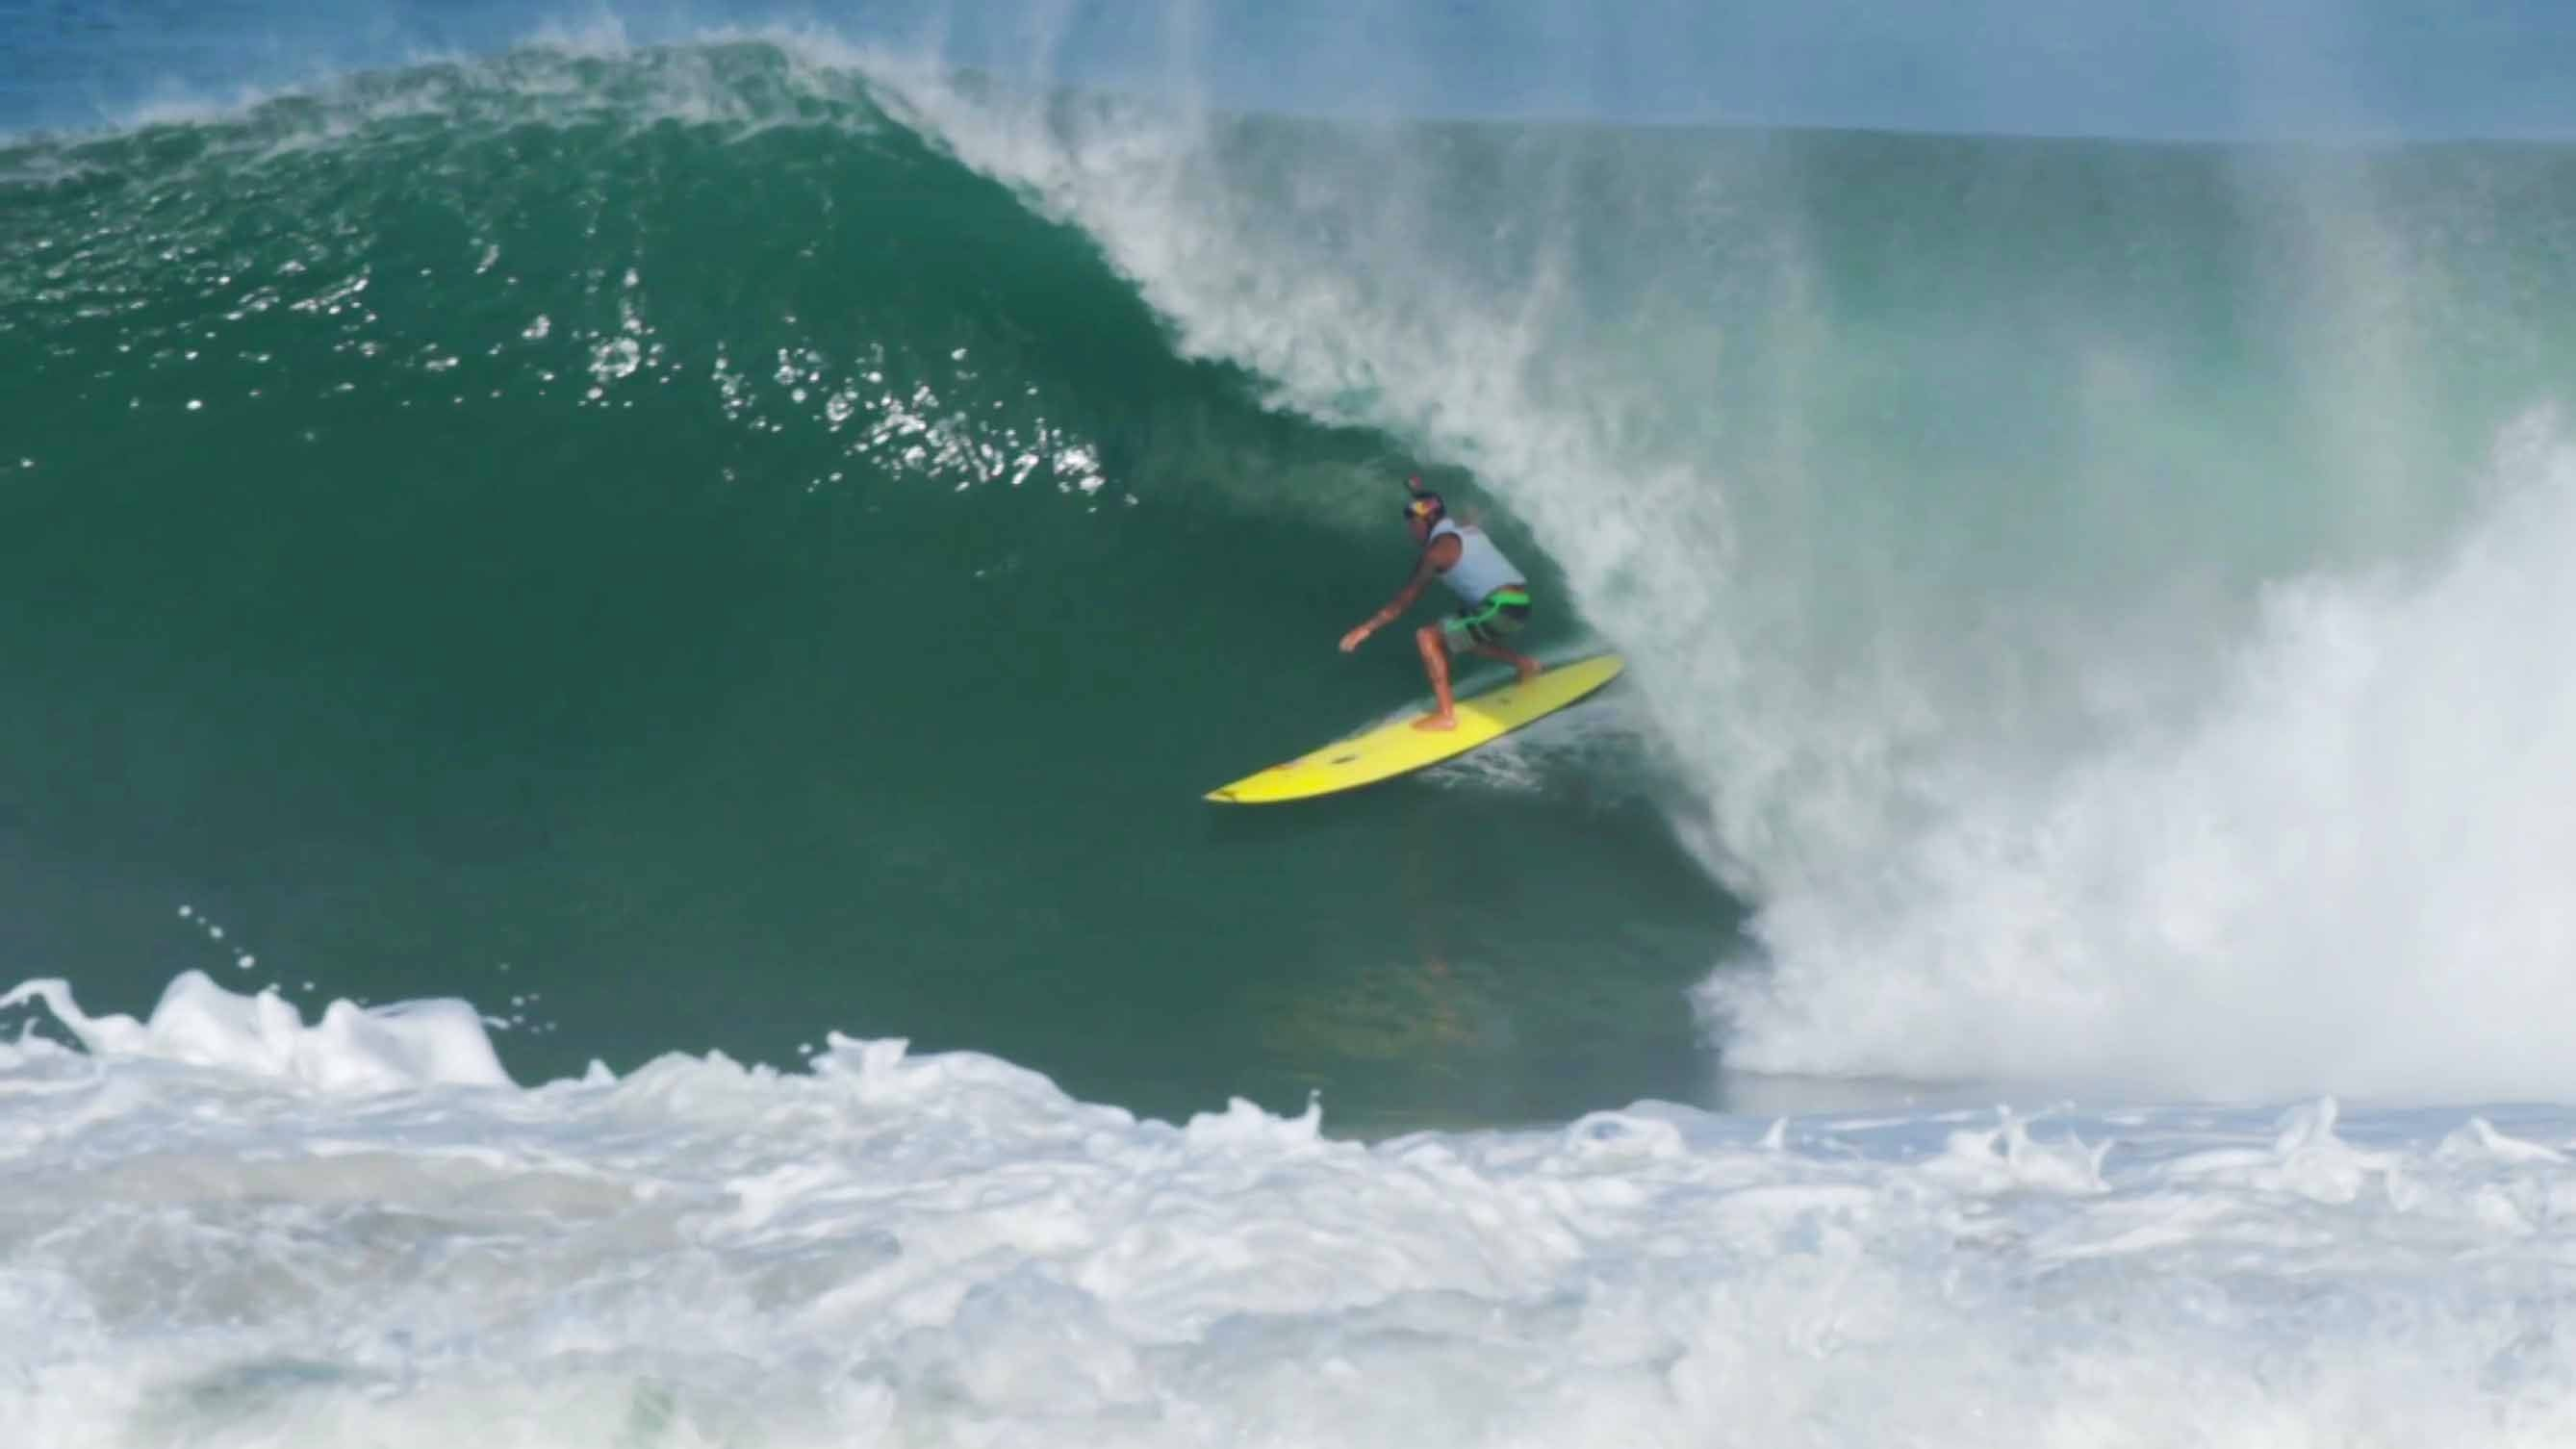 Peaking - A Big Wave Surfer's Perspective: Coco Nogales